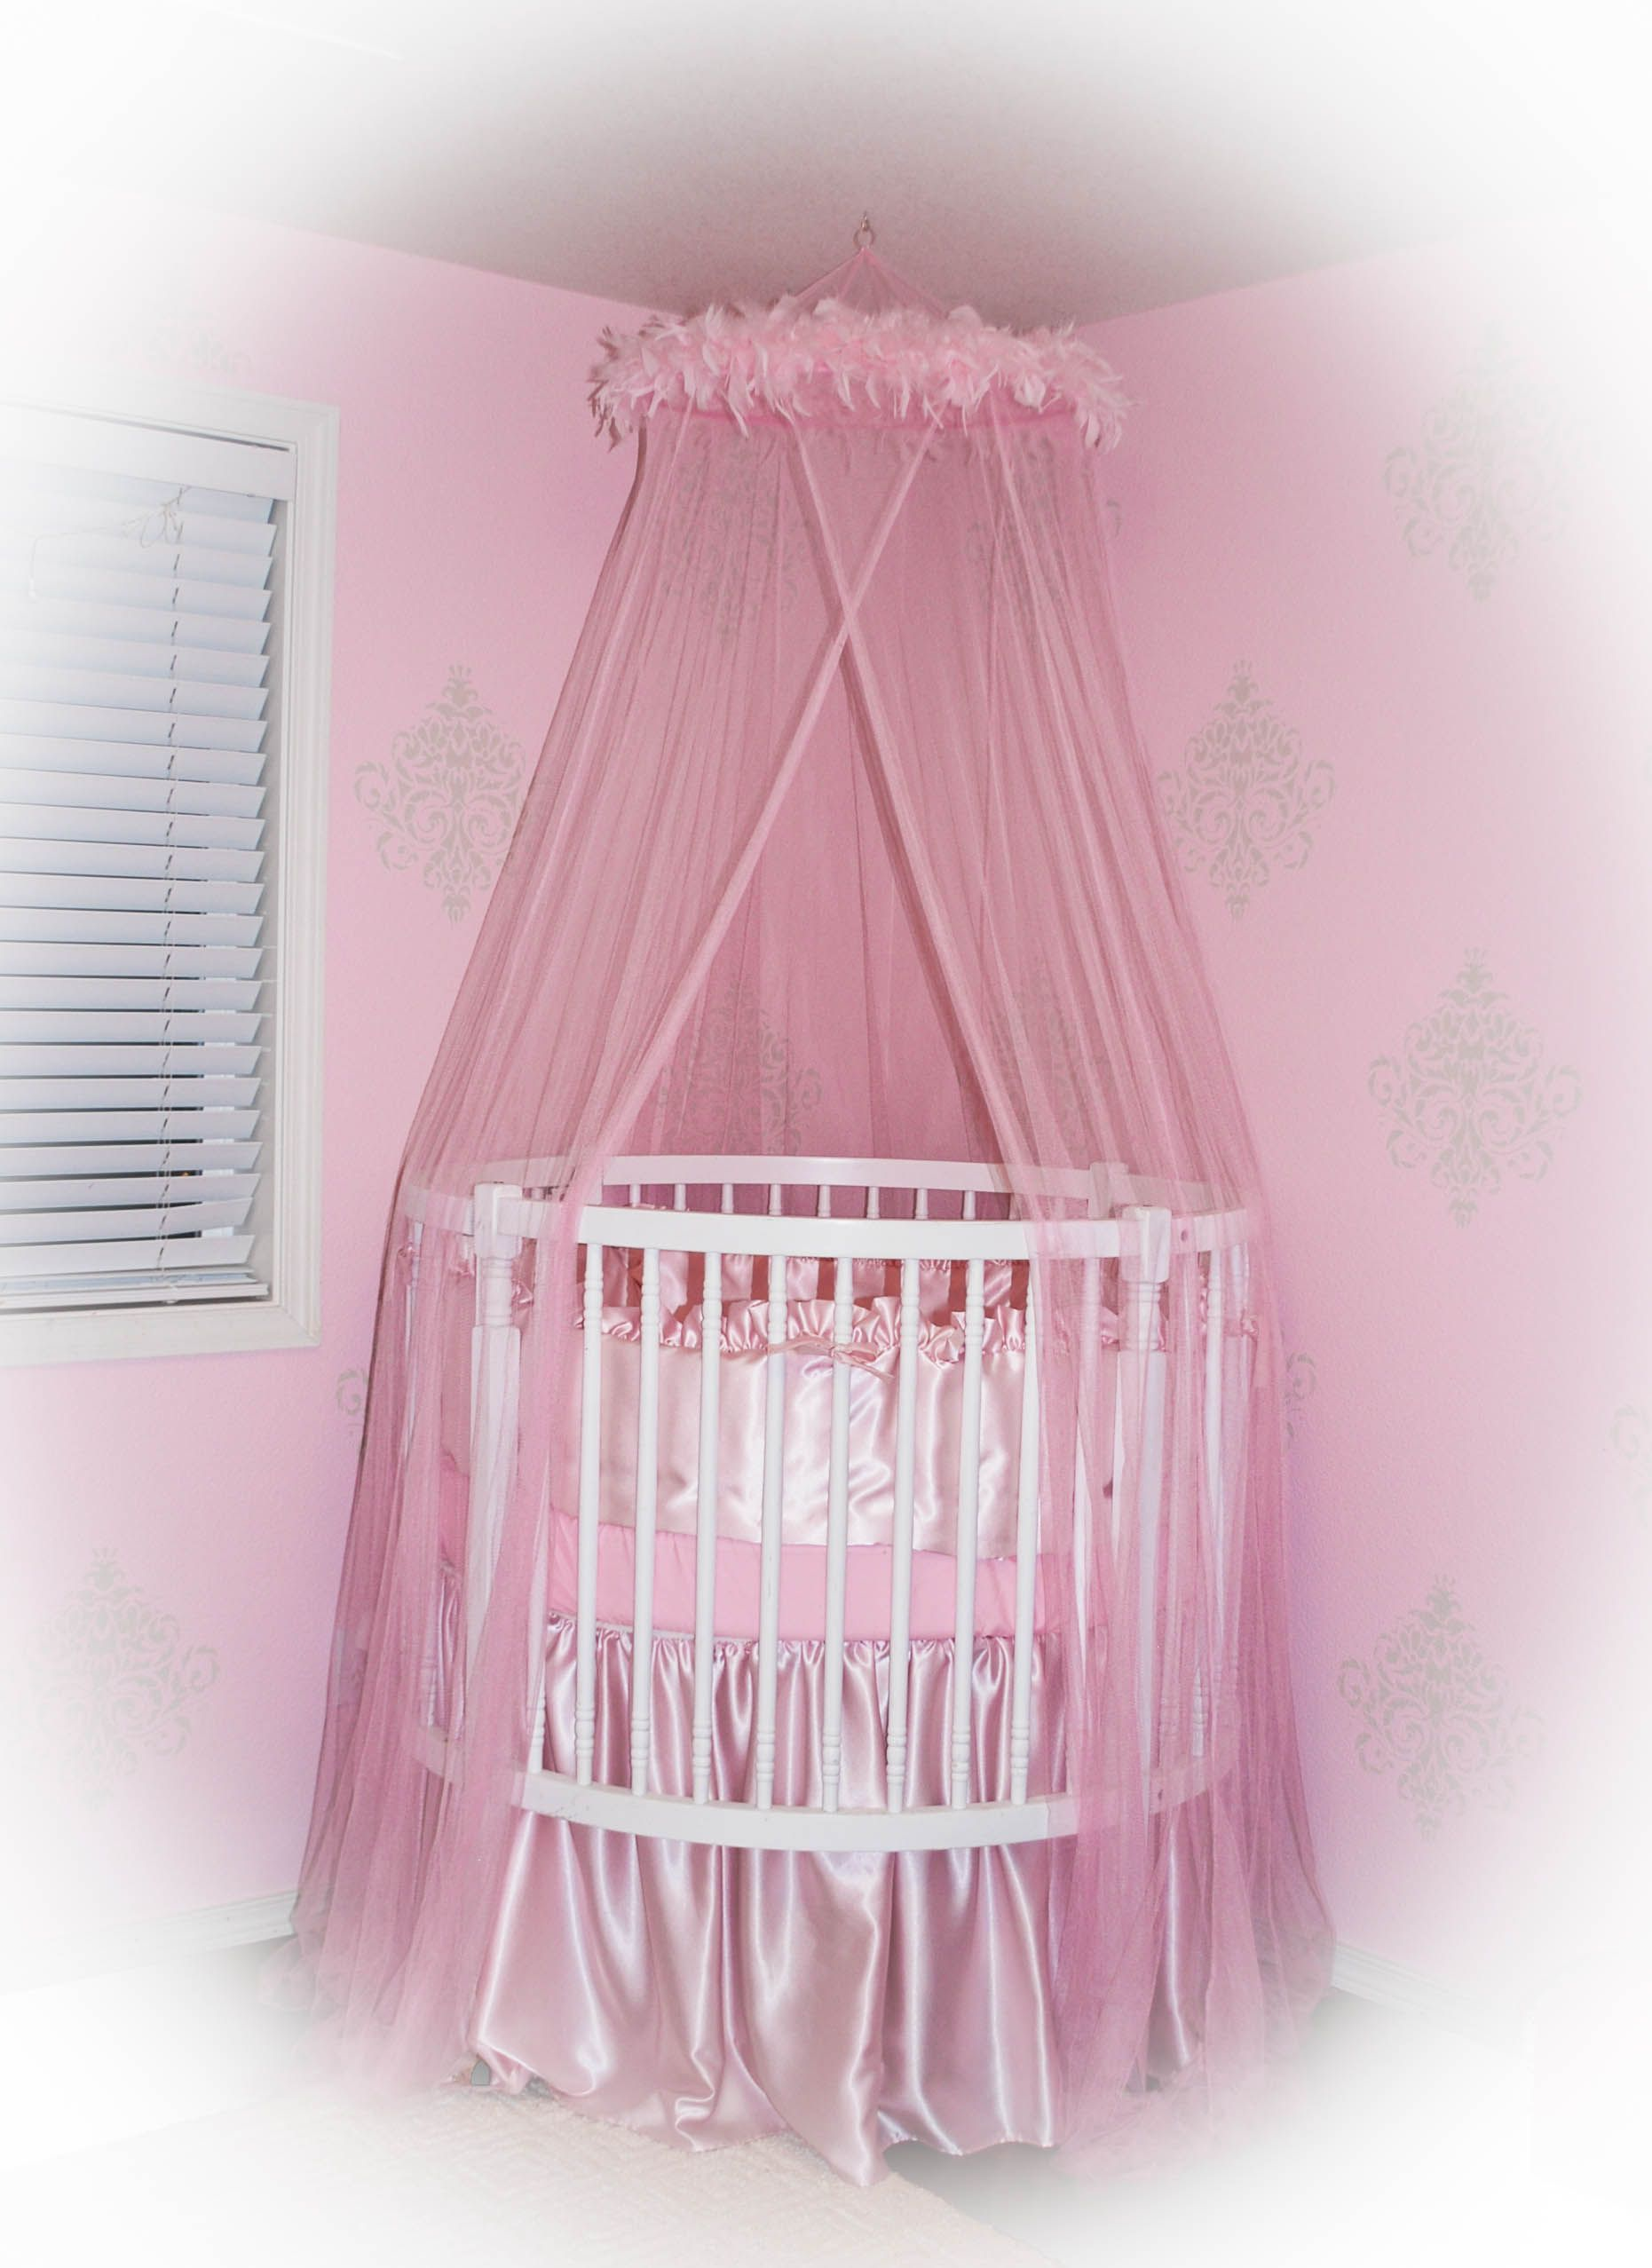 every baby corner of oad this ed solid made cribs photo wooden unique empty part home exploit remington stock crib design freeimageslive free quickly s